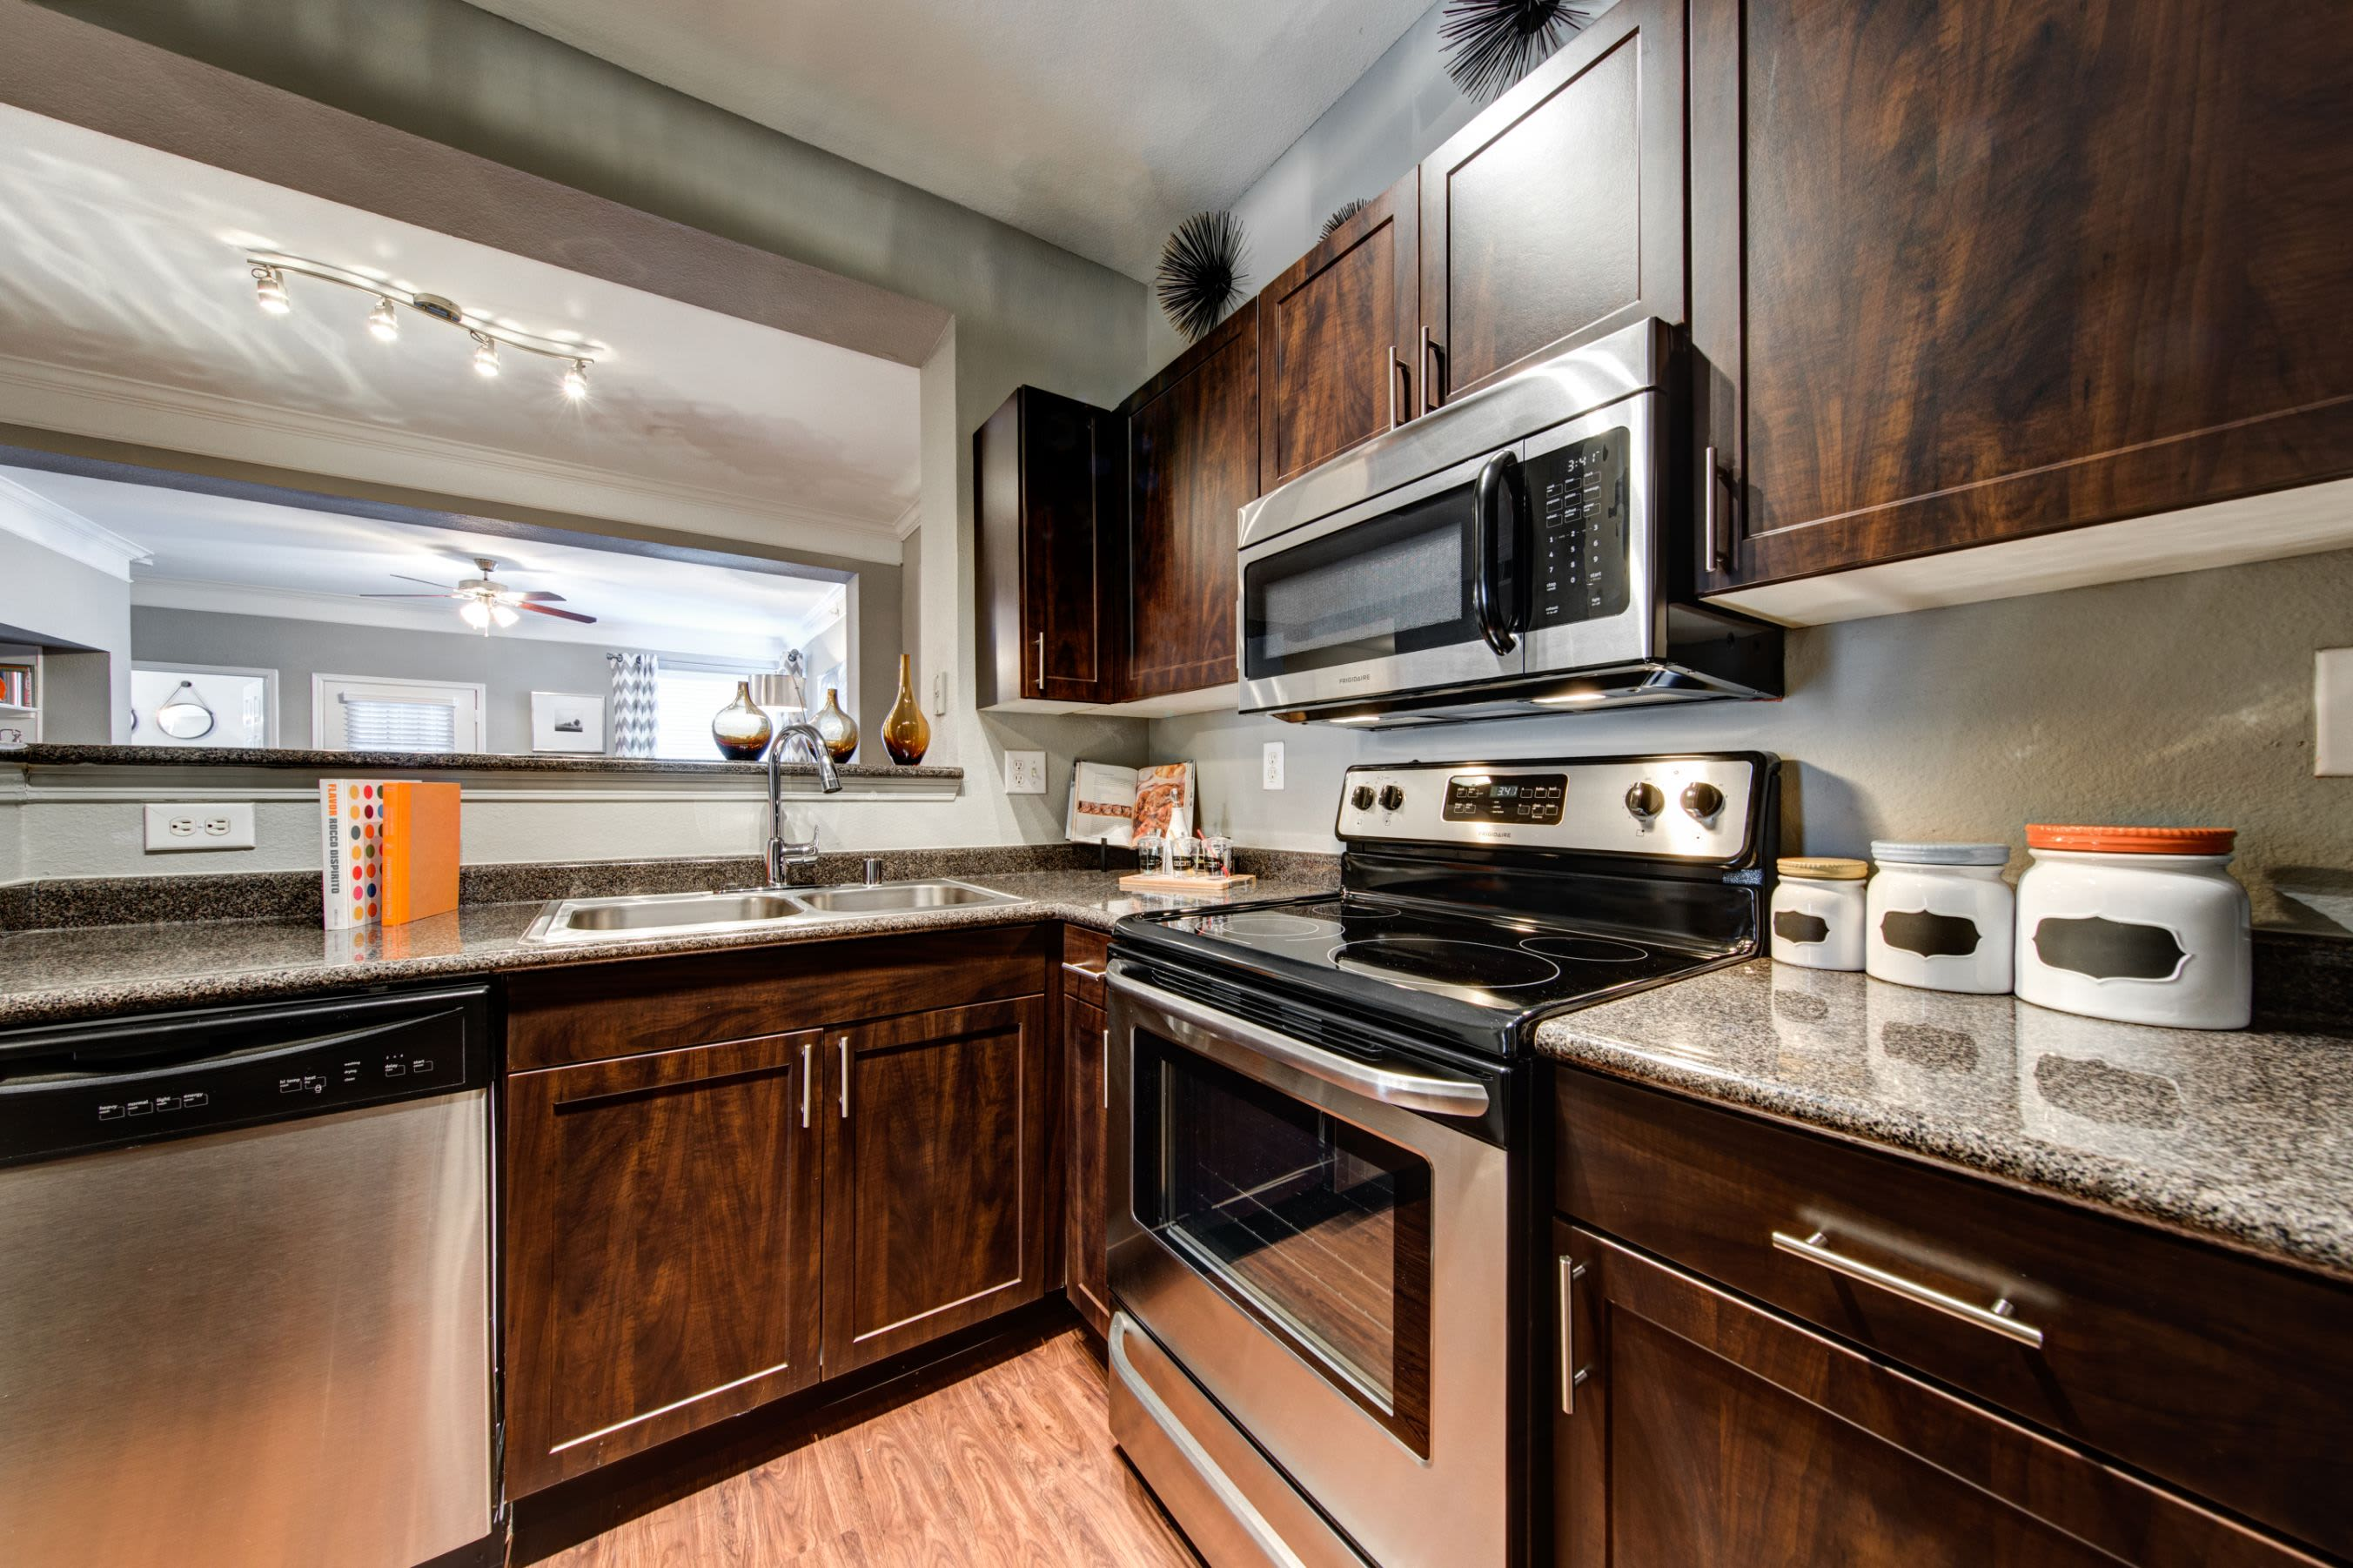 Kitchen with granite style countertops at Marquis on Gaston in Dallas, Texas